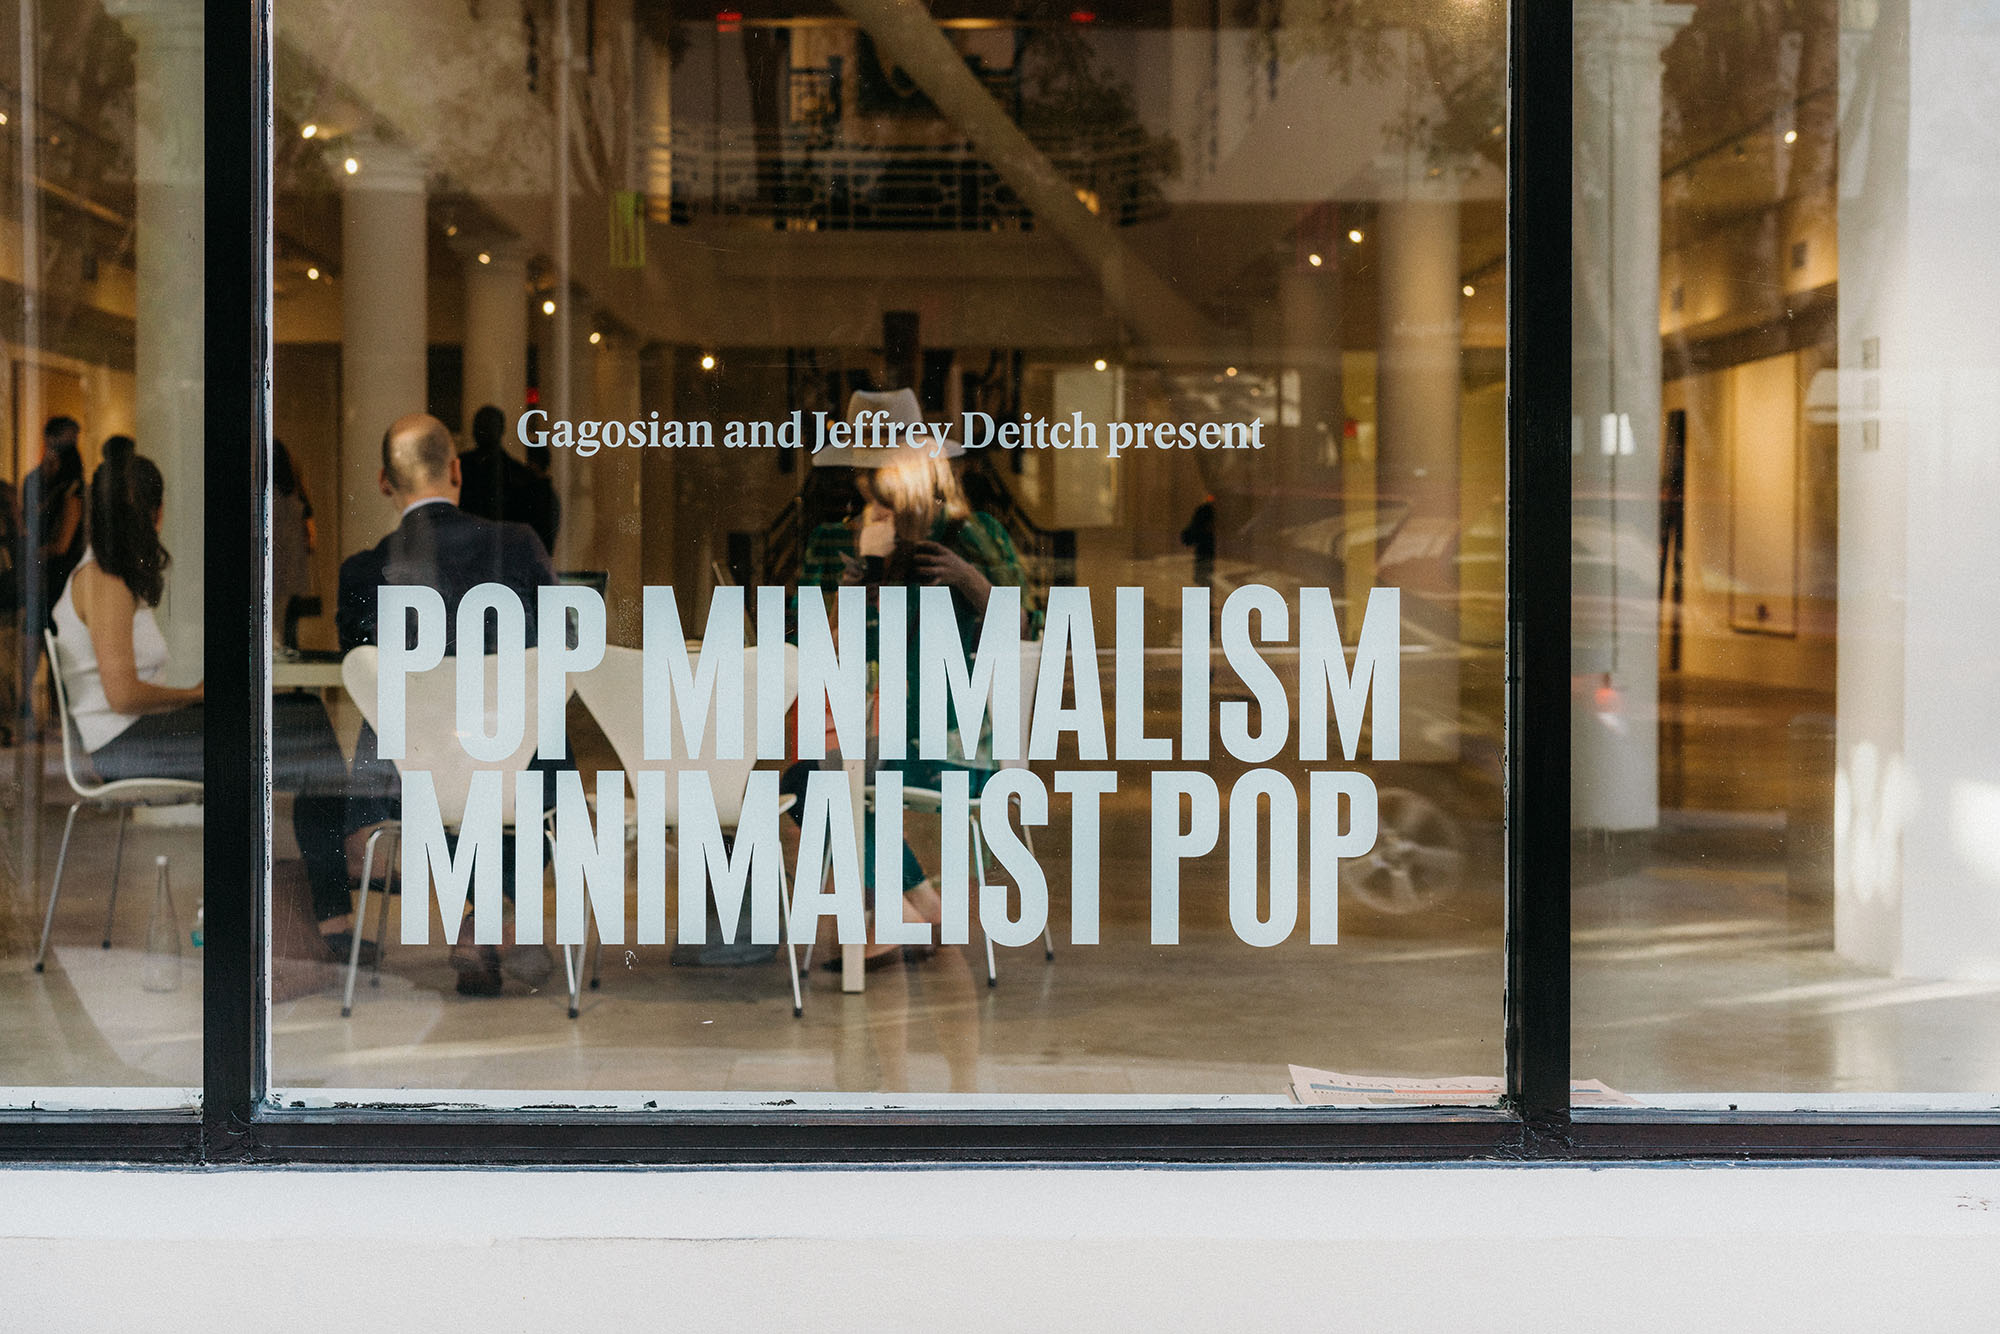 Pop Minimalism: Minimalist Pop presented by Gagosian and Jeffrey Deitch  at the Moore Building